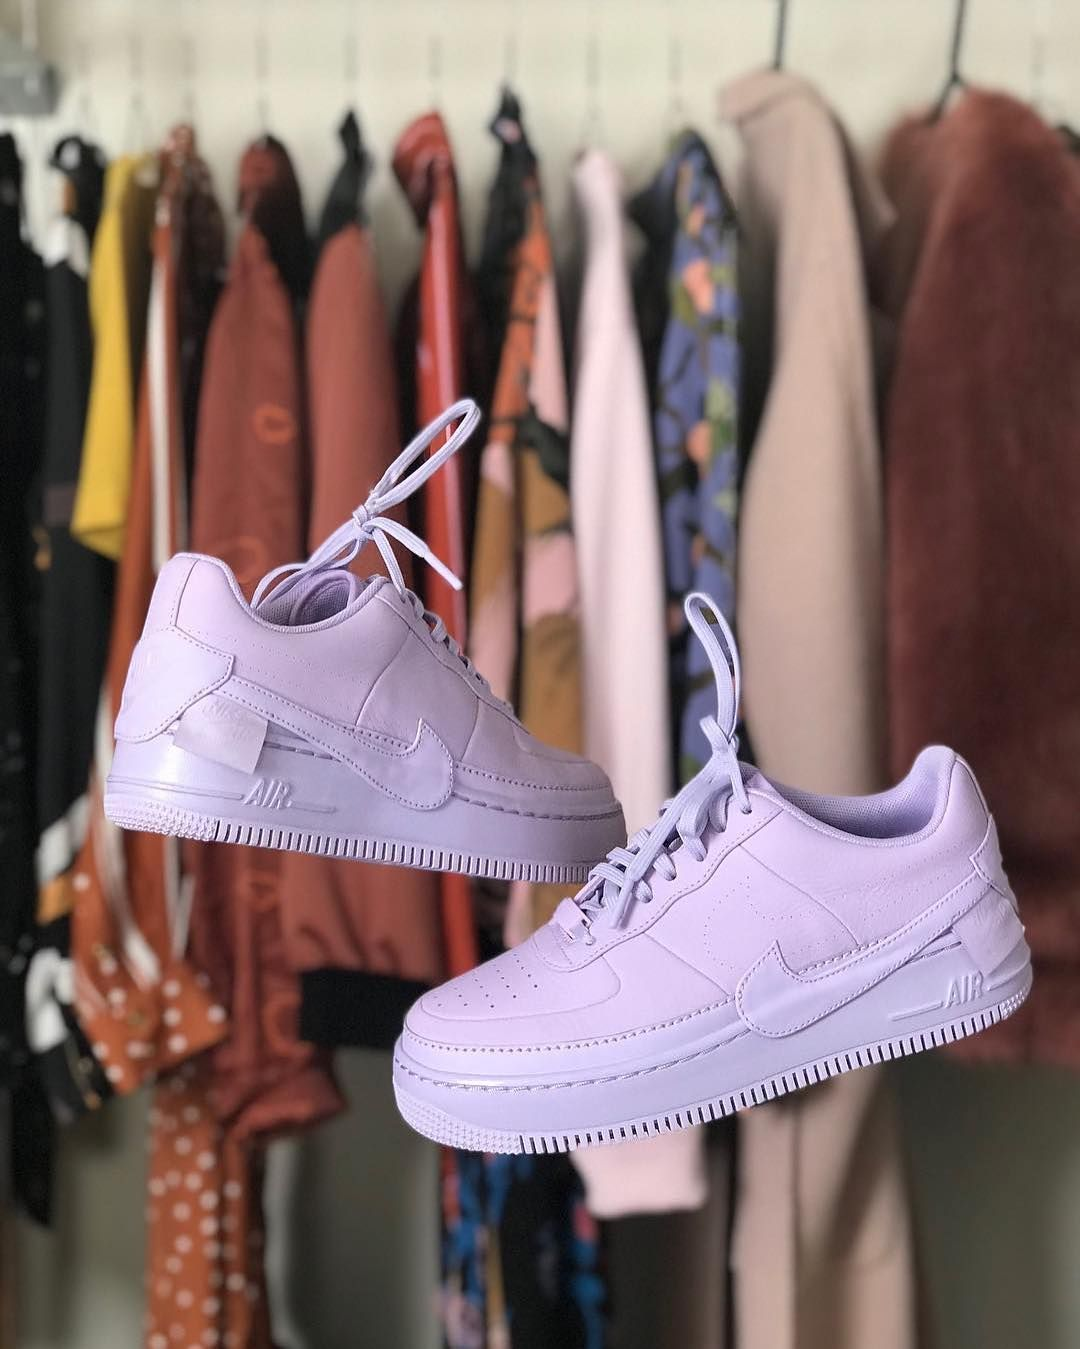 Ao1220 Nike 1 Jester 500From Force Air Xx Violet Mist Low BxWEQdrCeo